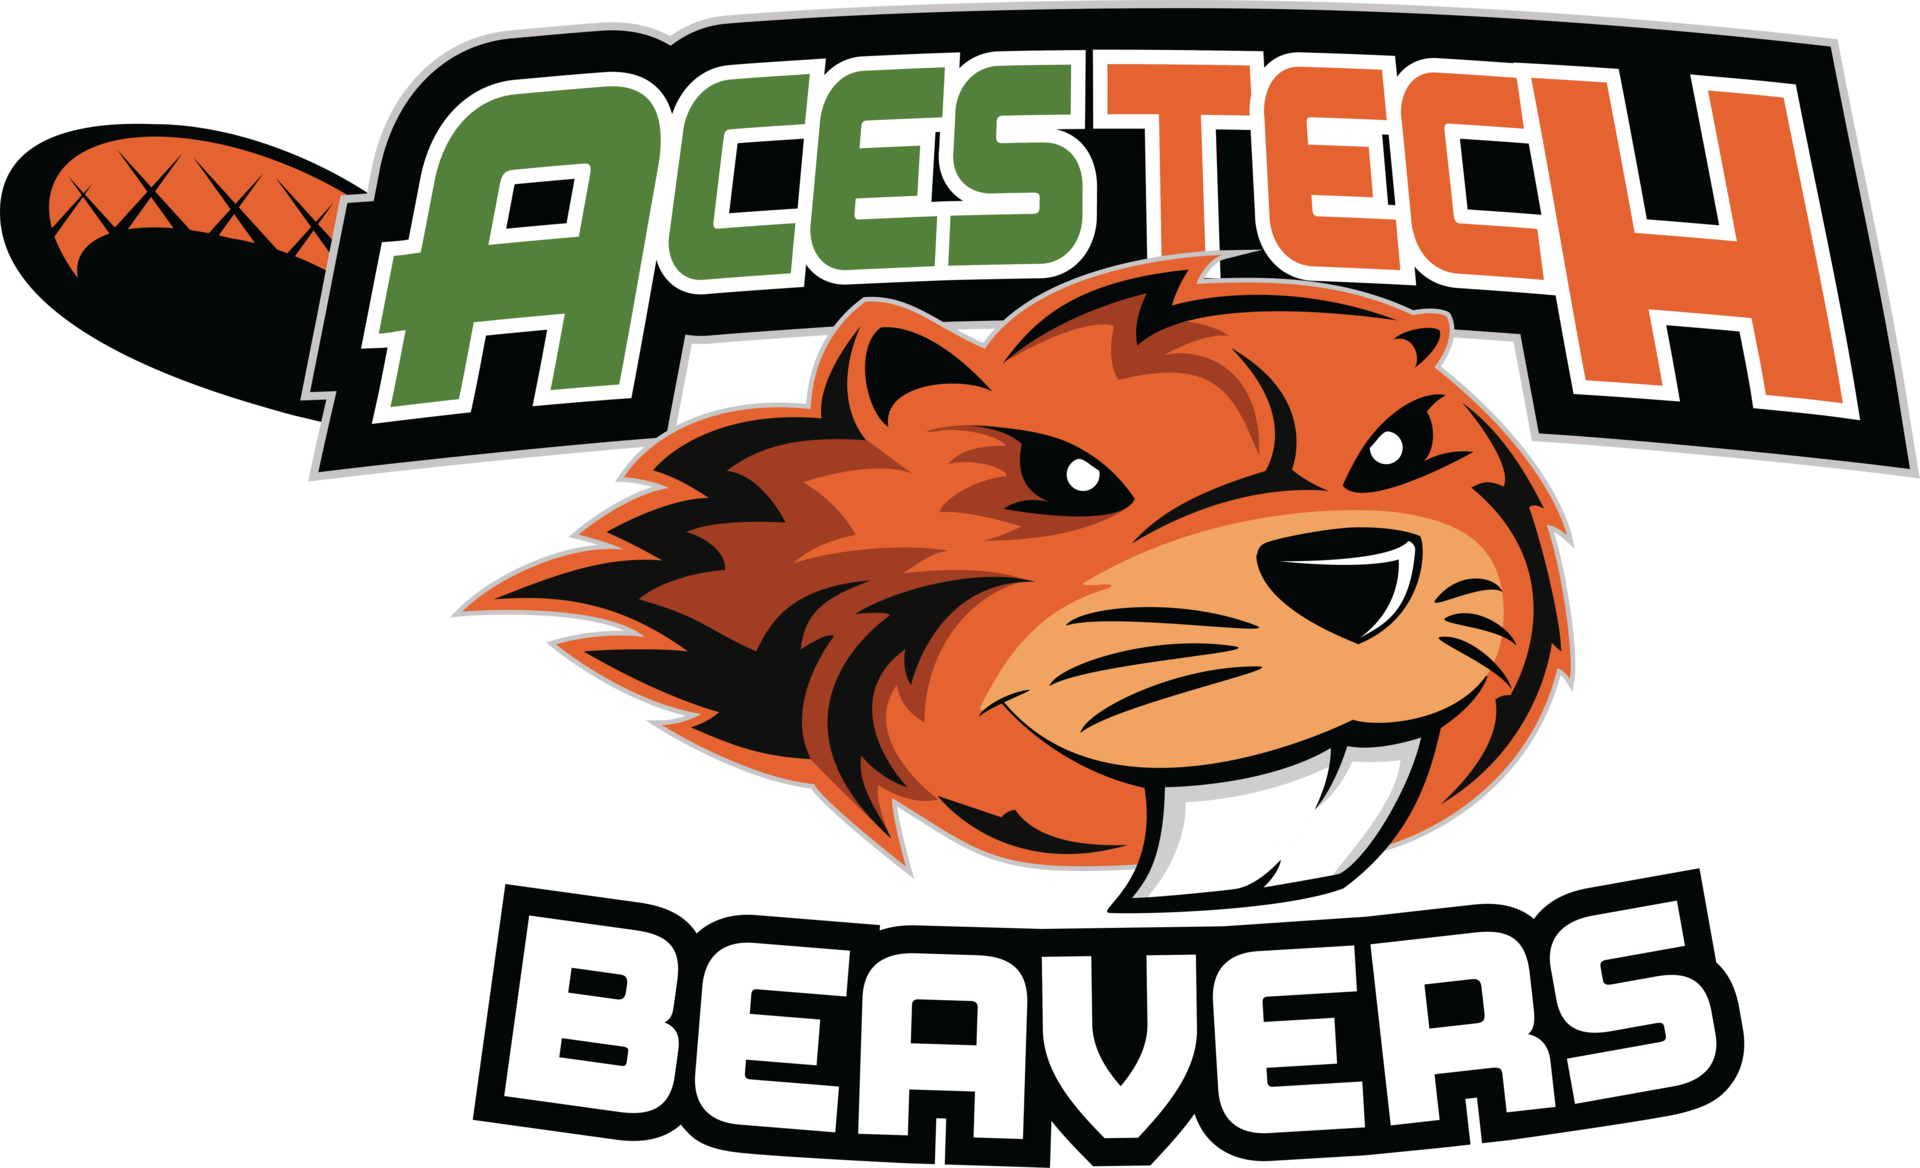 ACES Tech Beaver logo